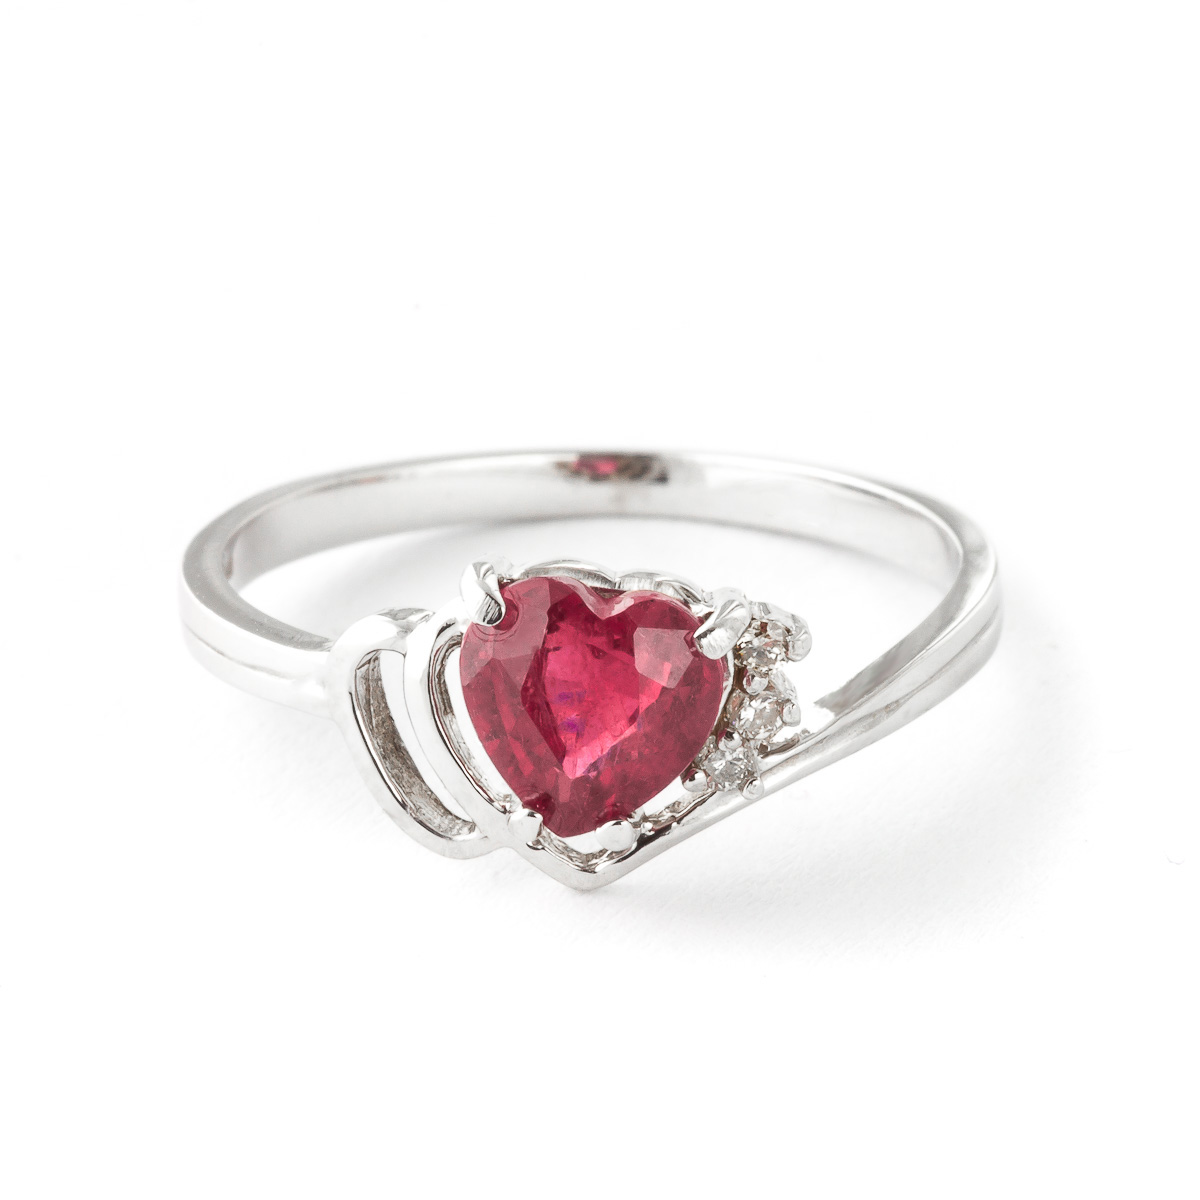 Ruby & Diamond Devotion Ring in 9ct White Gold